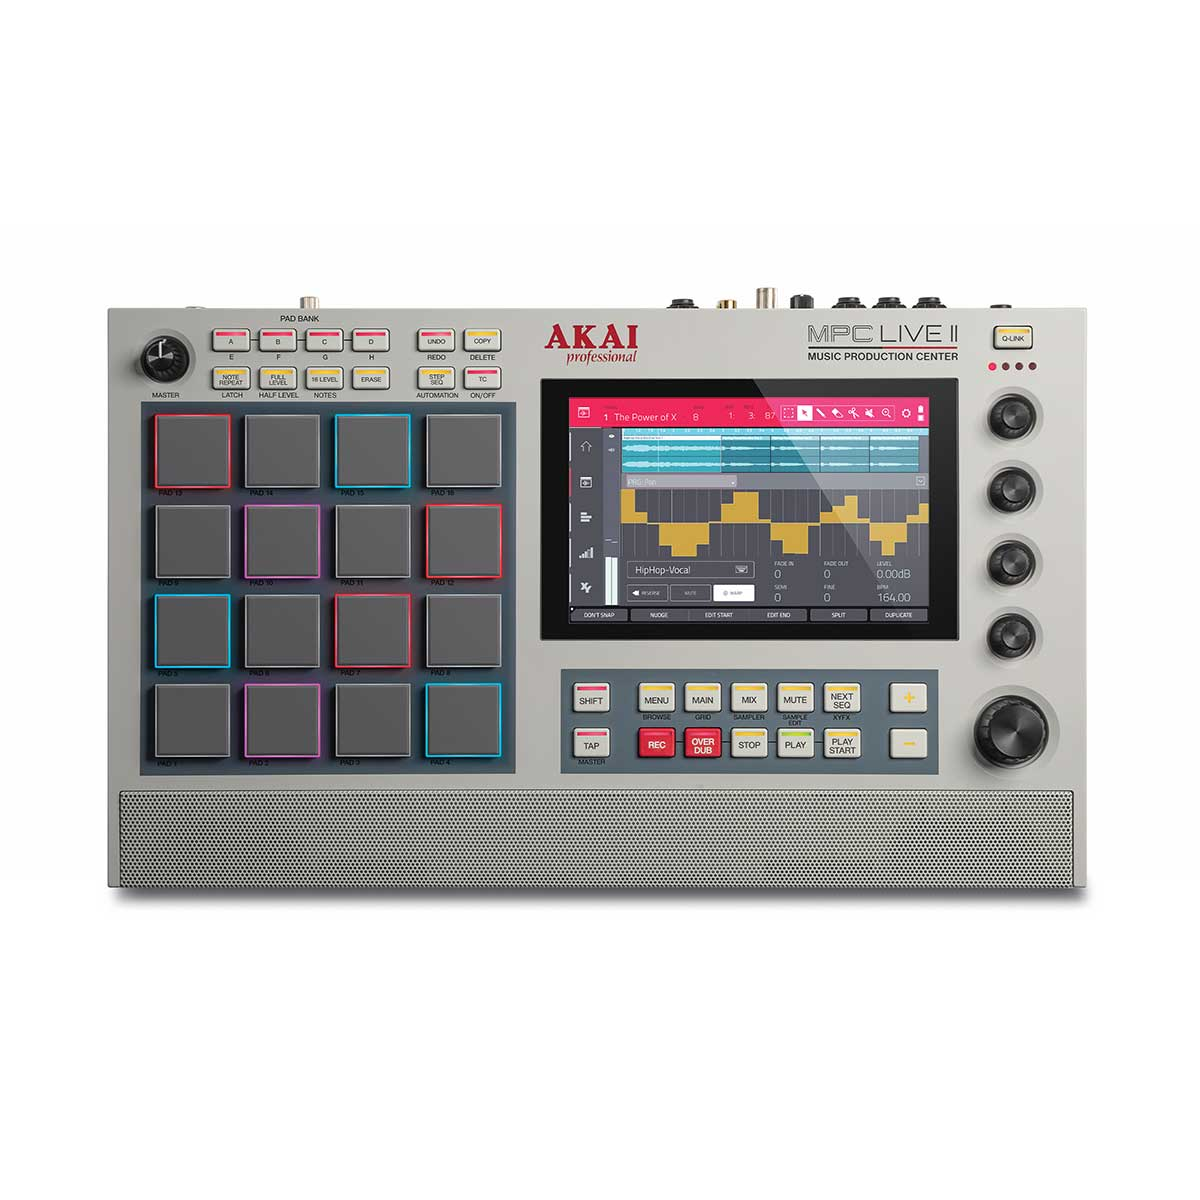 AKAI MPC Live II Retro Limited Edition